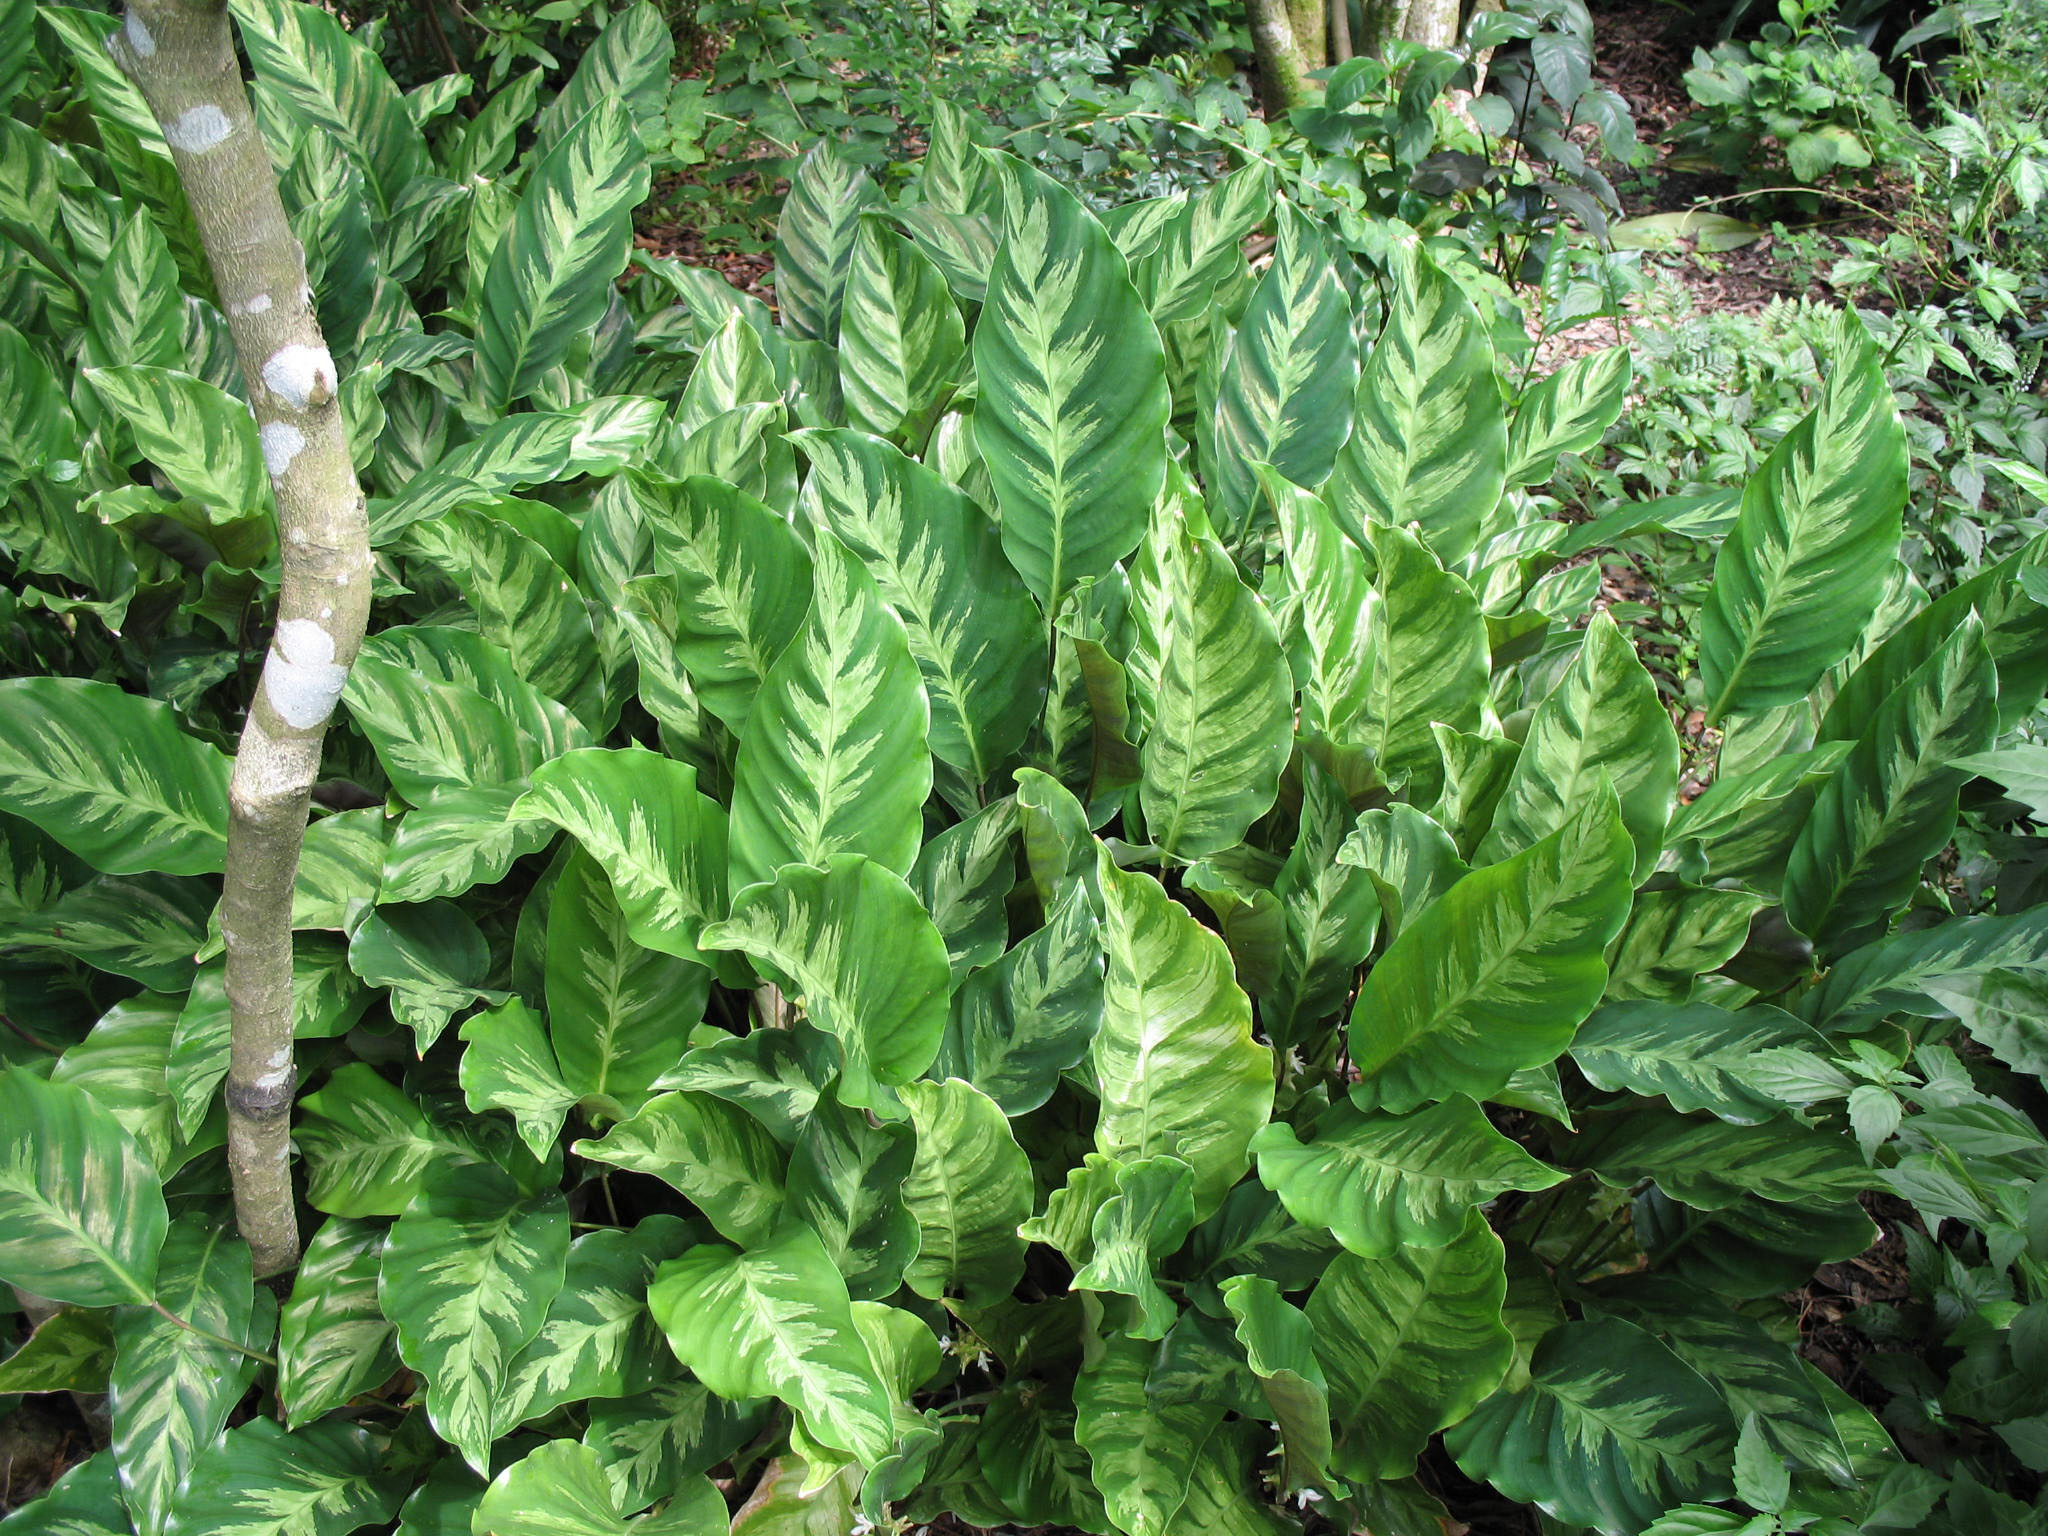 Calathea species / Calathea species